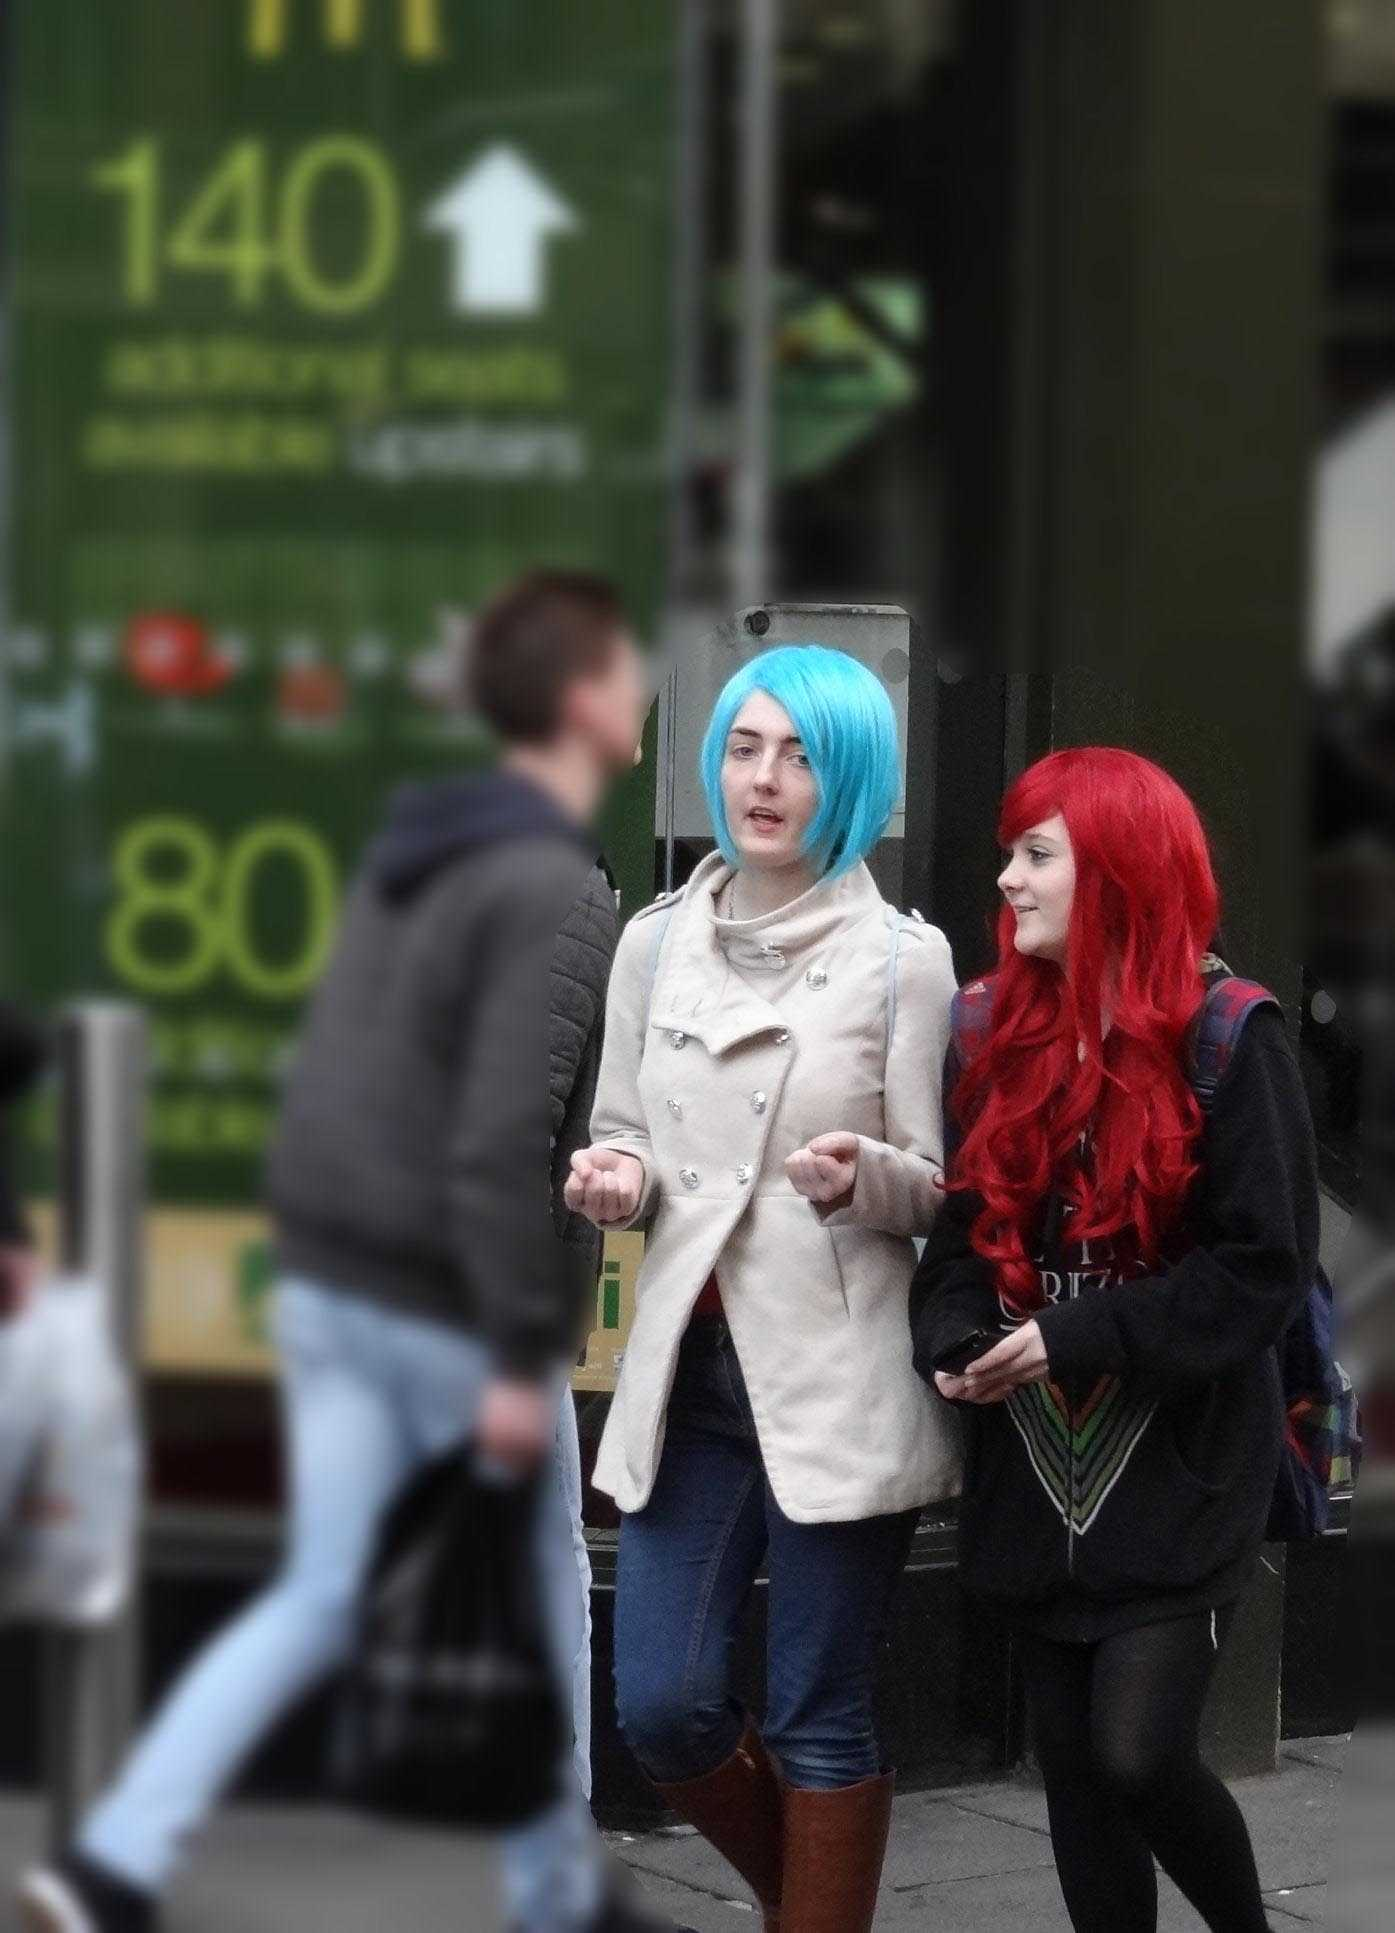 Excellent hair colours :)